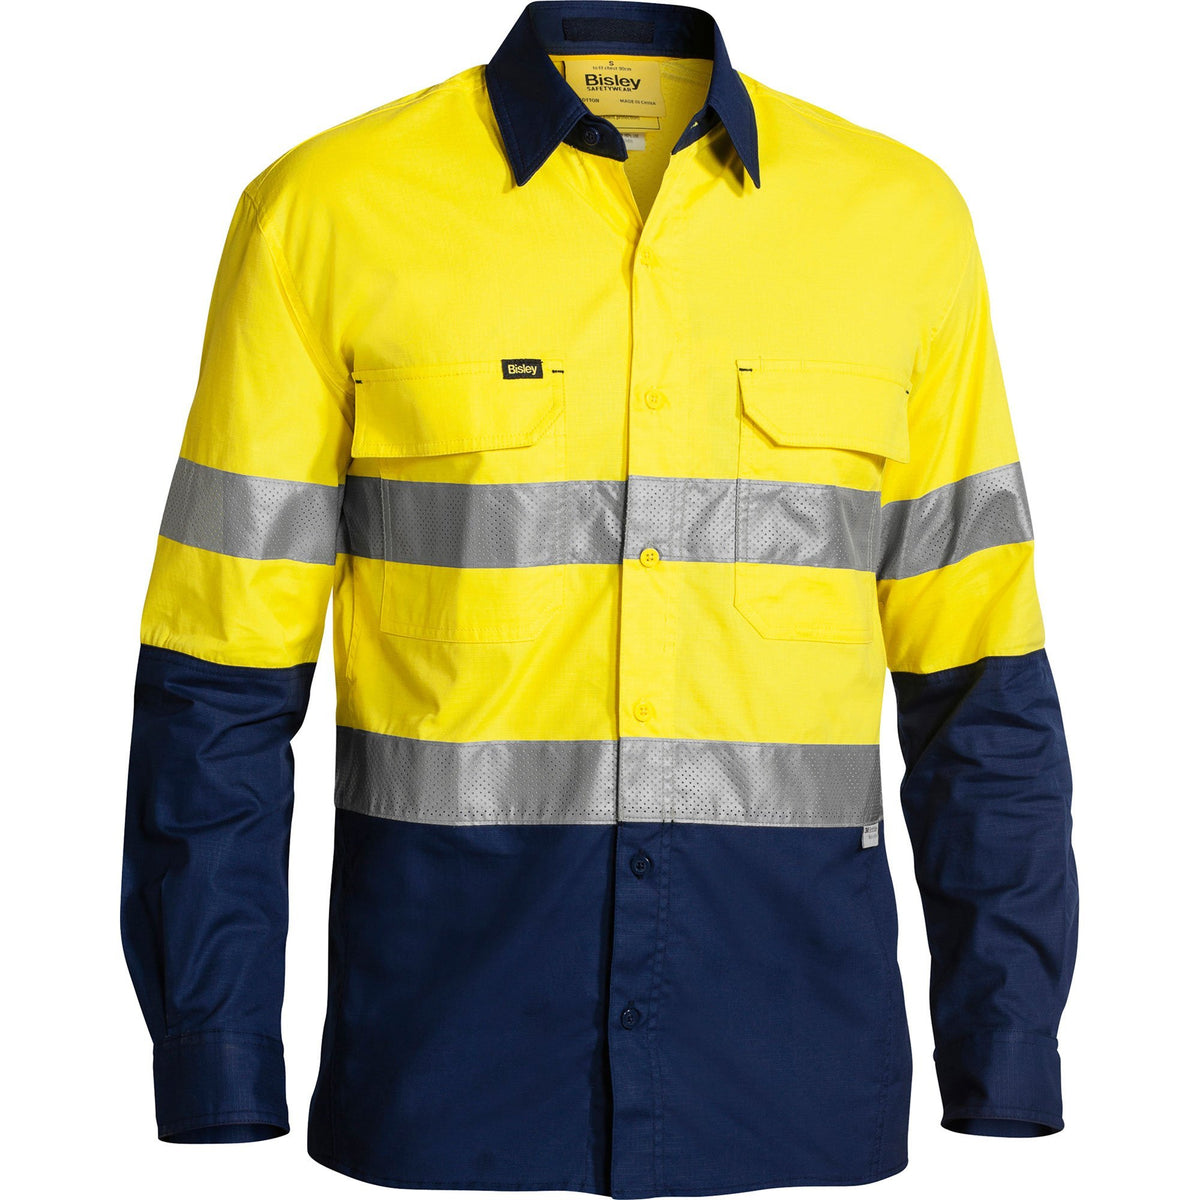 Bisley - 3M Taped Hi Vis Ripstop Shirt